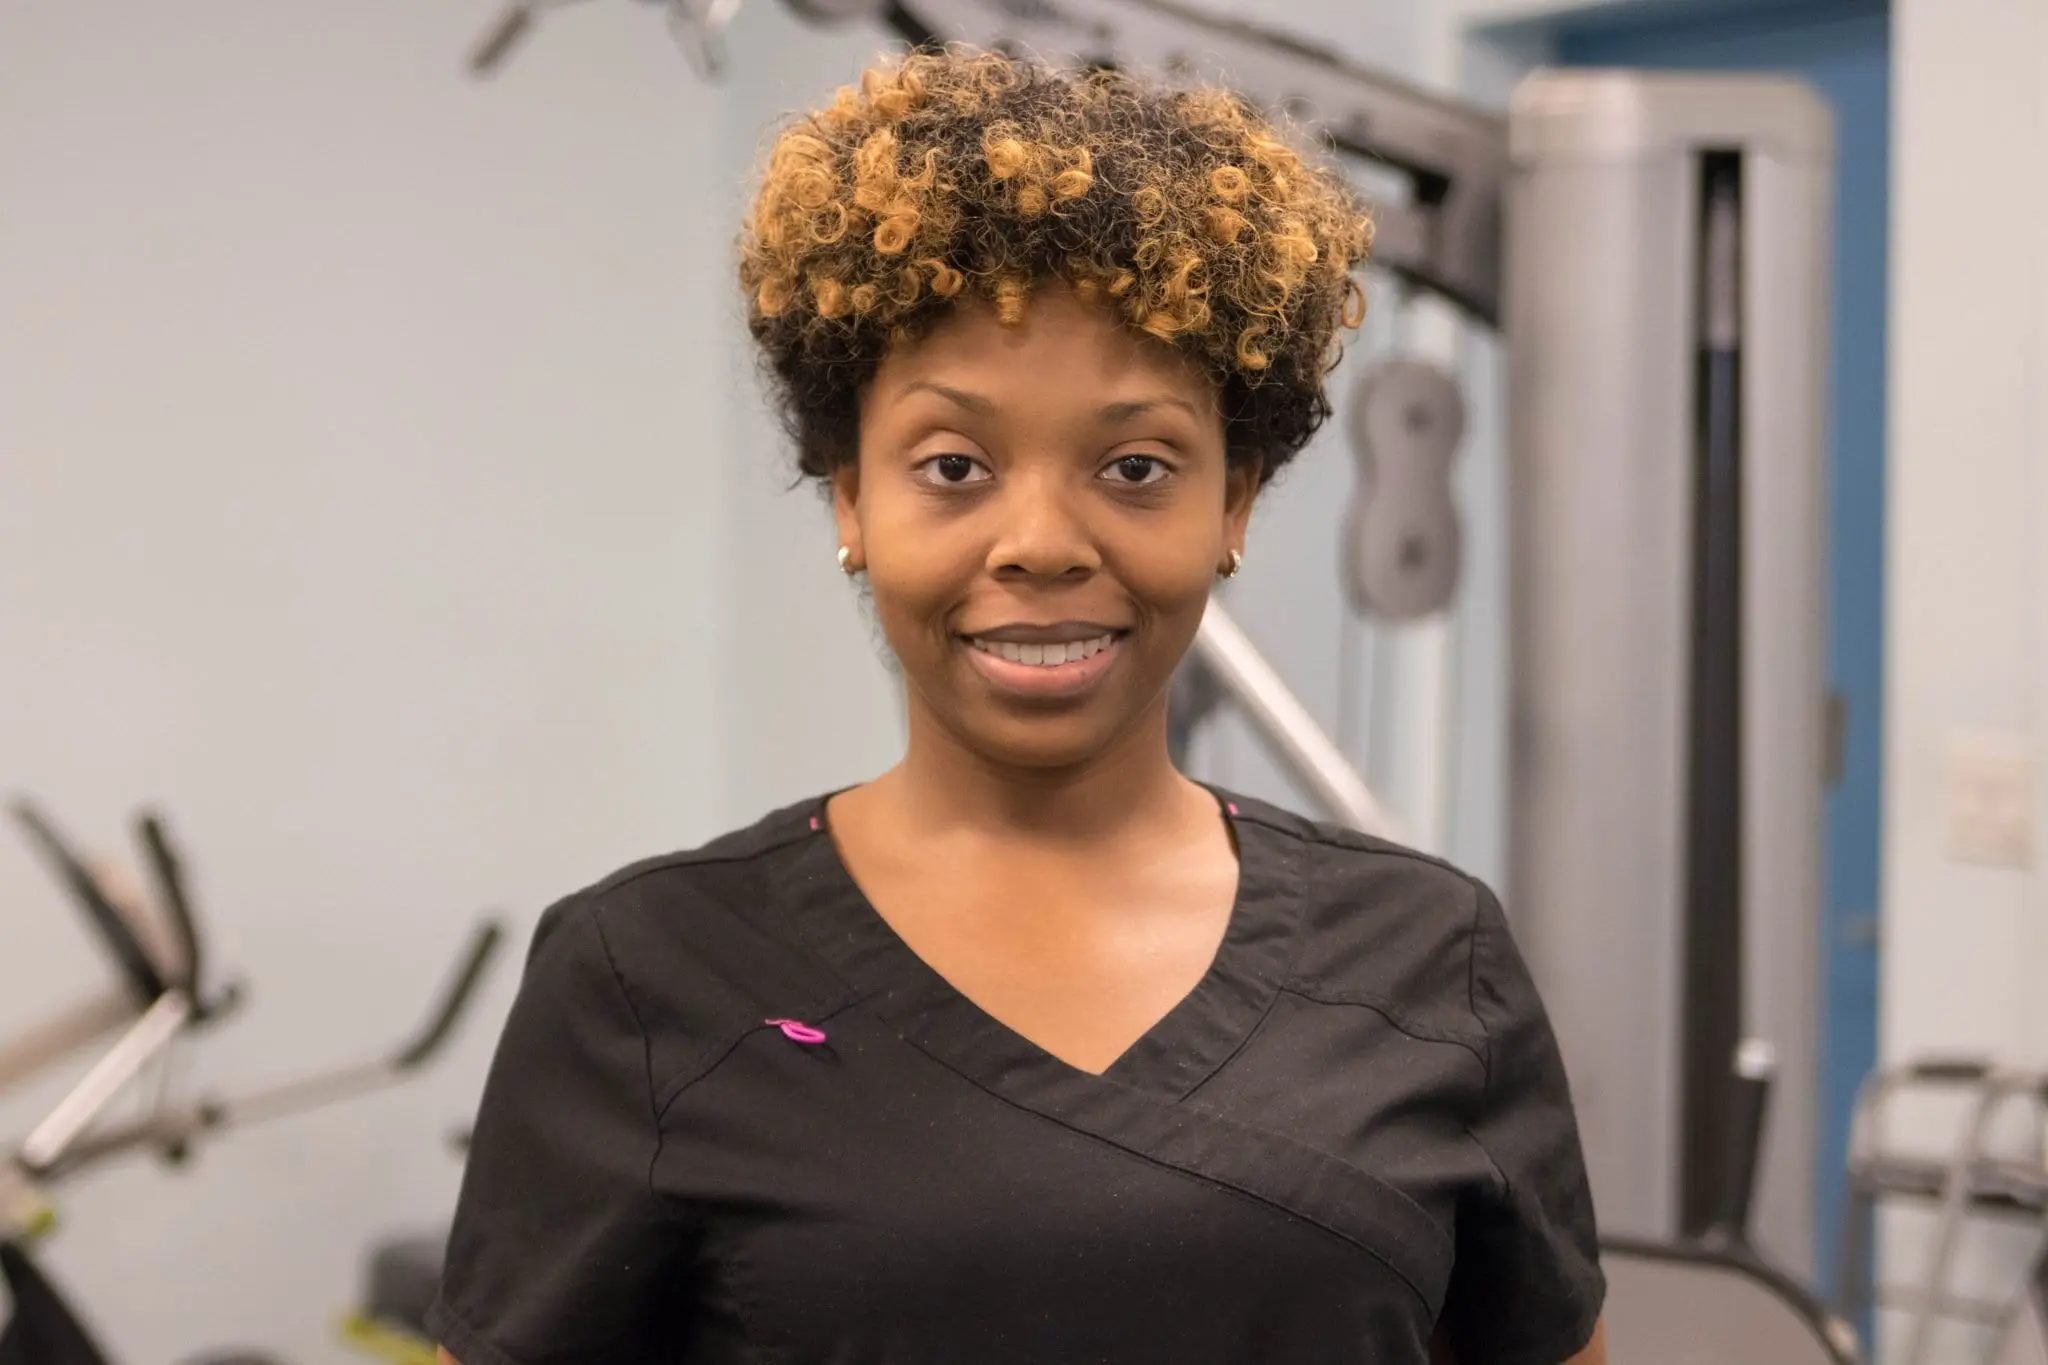 Premier-Physical-Therapy-Chicago-South-Loop-Dr-Beavers-Chicago-Physical-Therapist